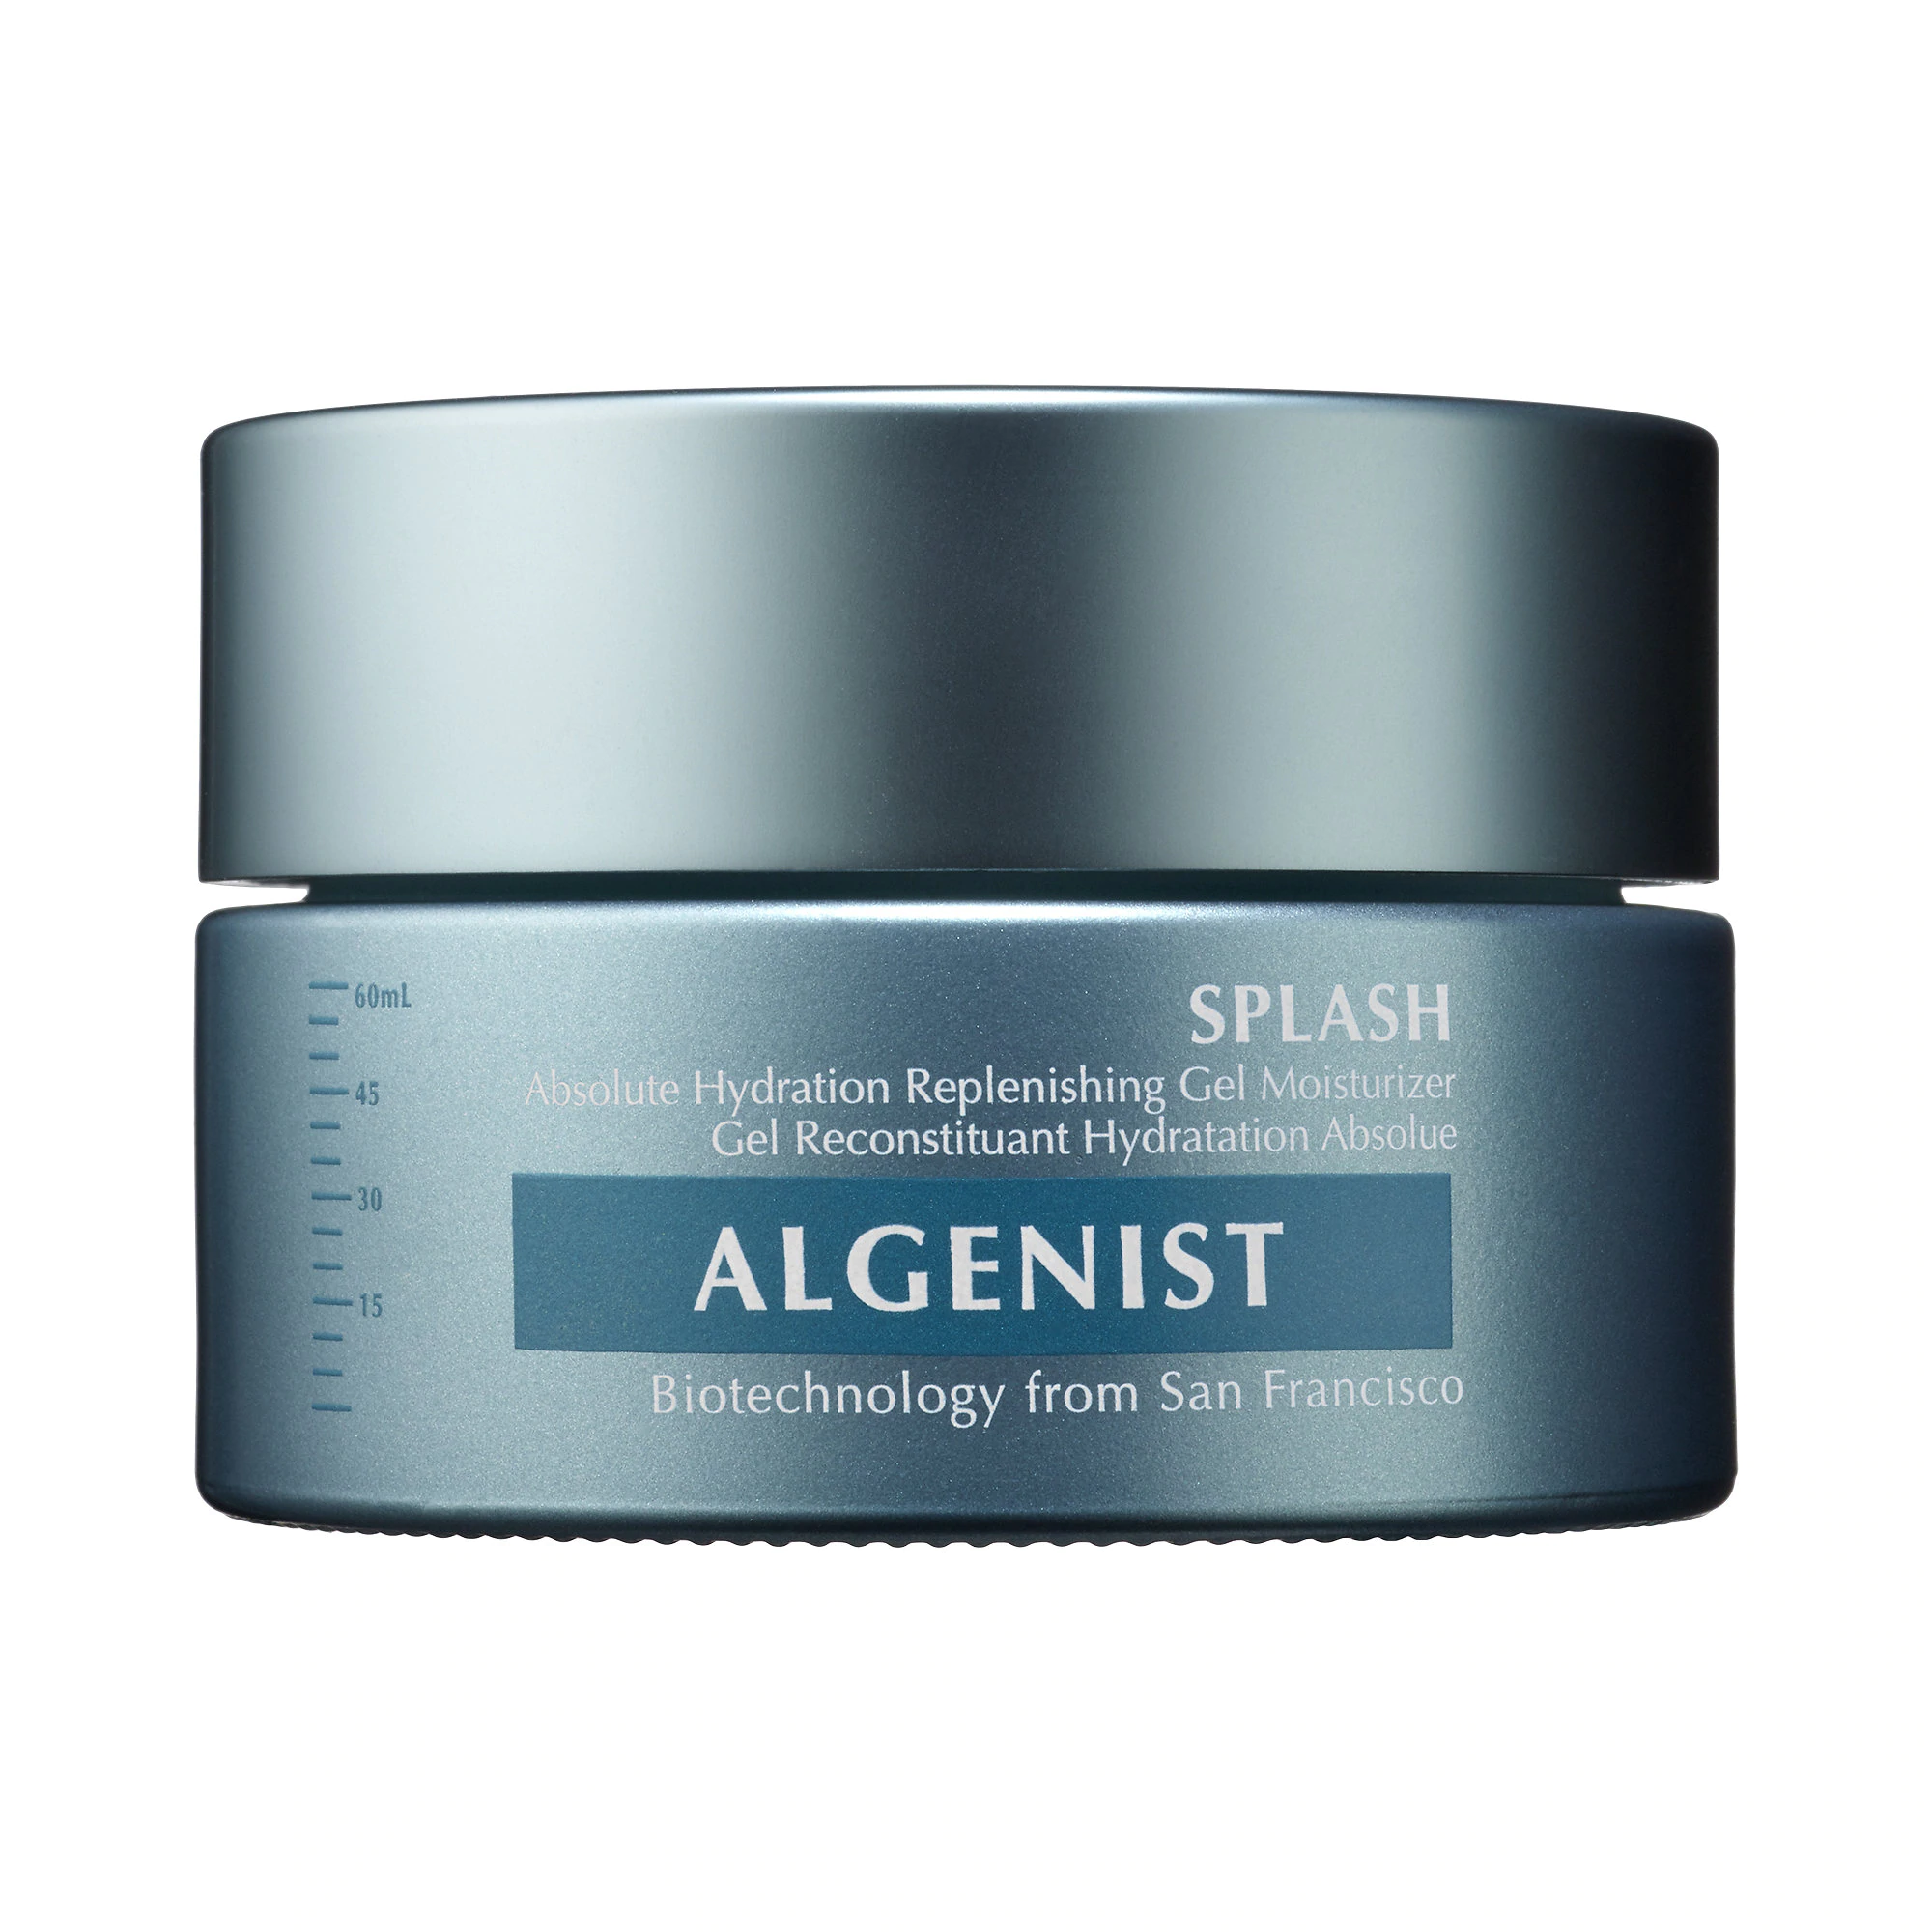 Algenist SPLASH Absolute Hydration Replenishing Gel Moisturizer